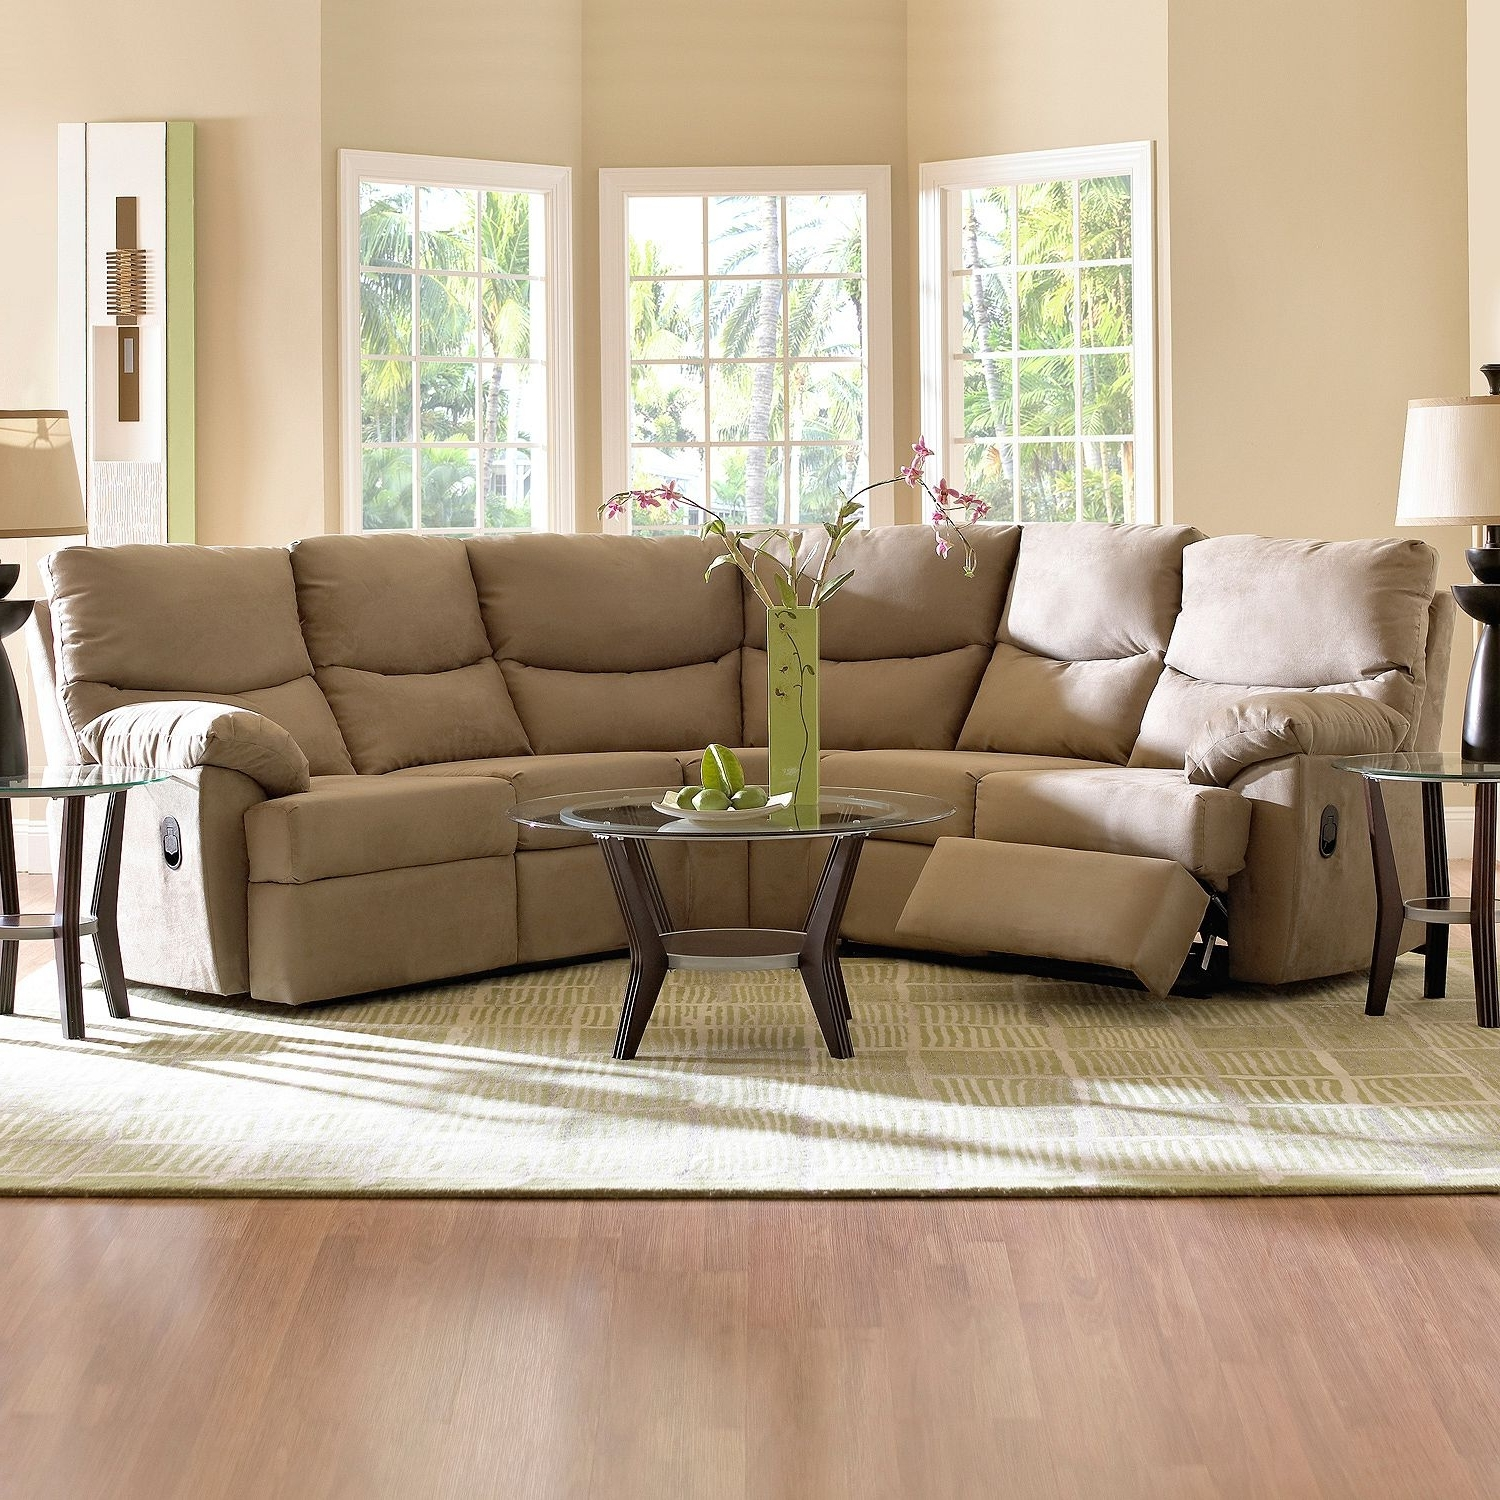 Home Intended For Newmarket Ontario Sectional Sofas (View 8 of 15)